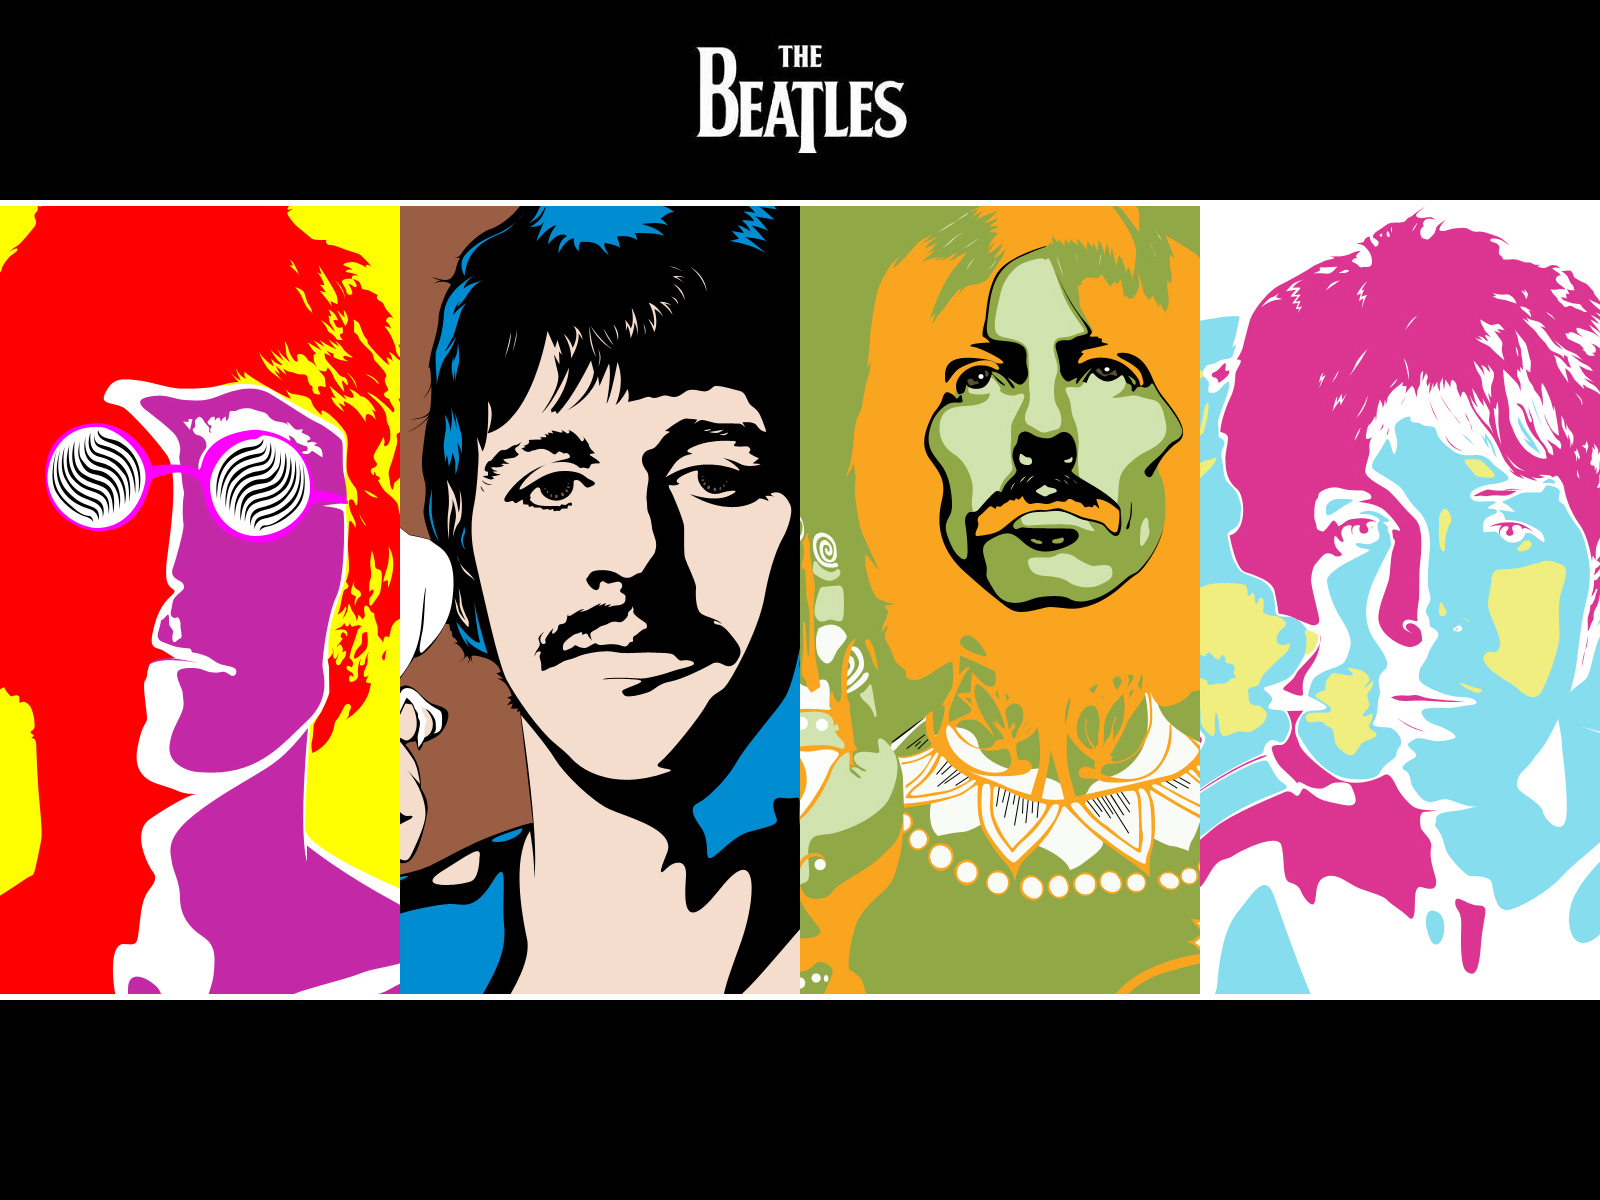 http://lounge.obviousmag.org/particulas_do_acaso/2016/04/28/imagens/The-Beatles-the-beatles-10561045-1600-1200.jpg